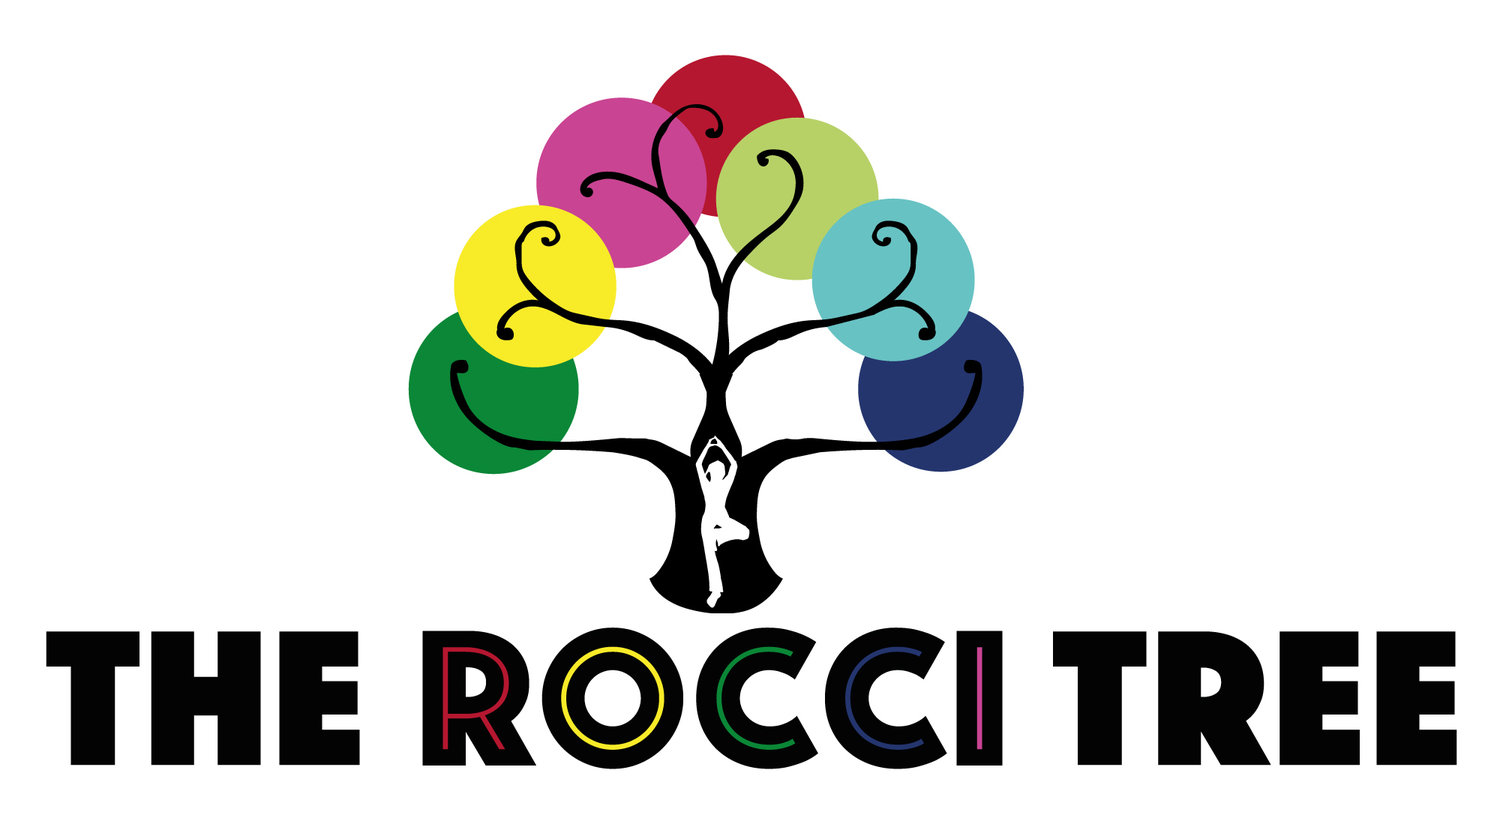 The Rocci Tree